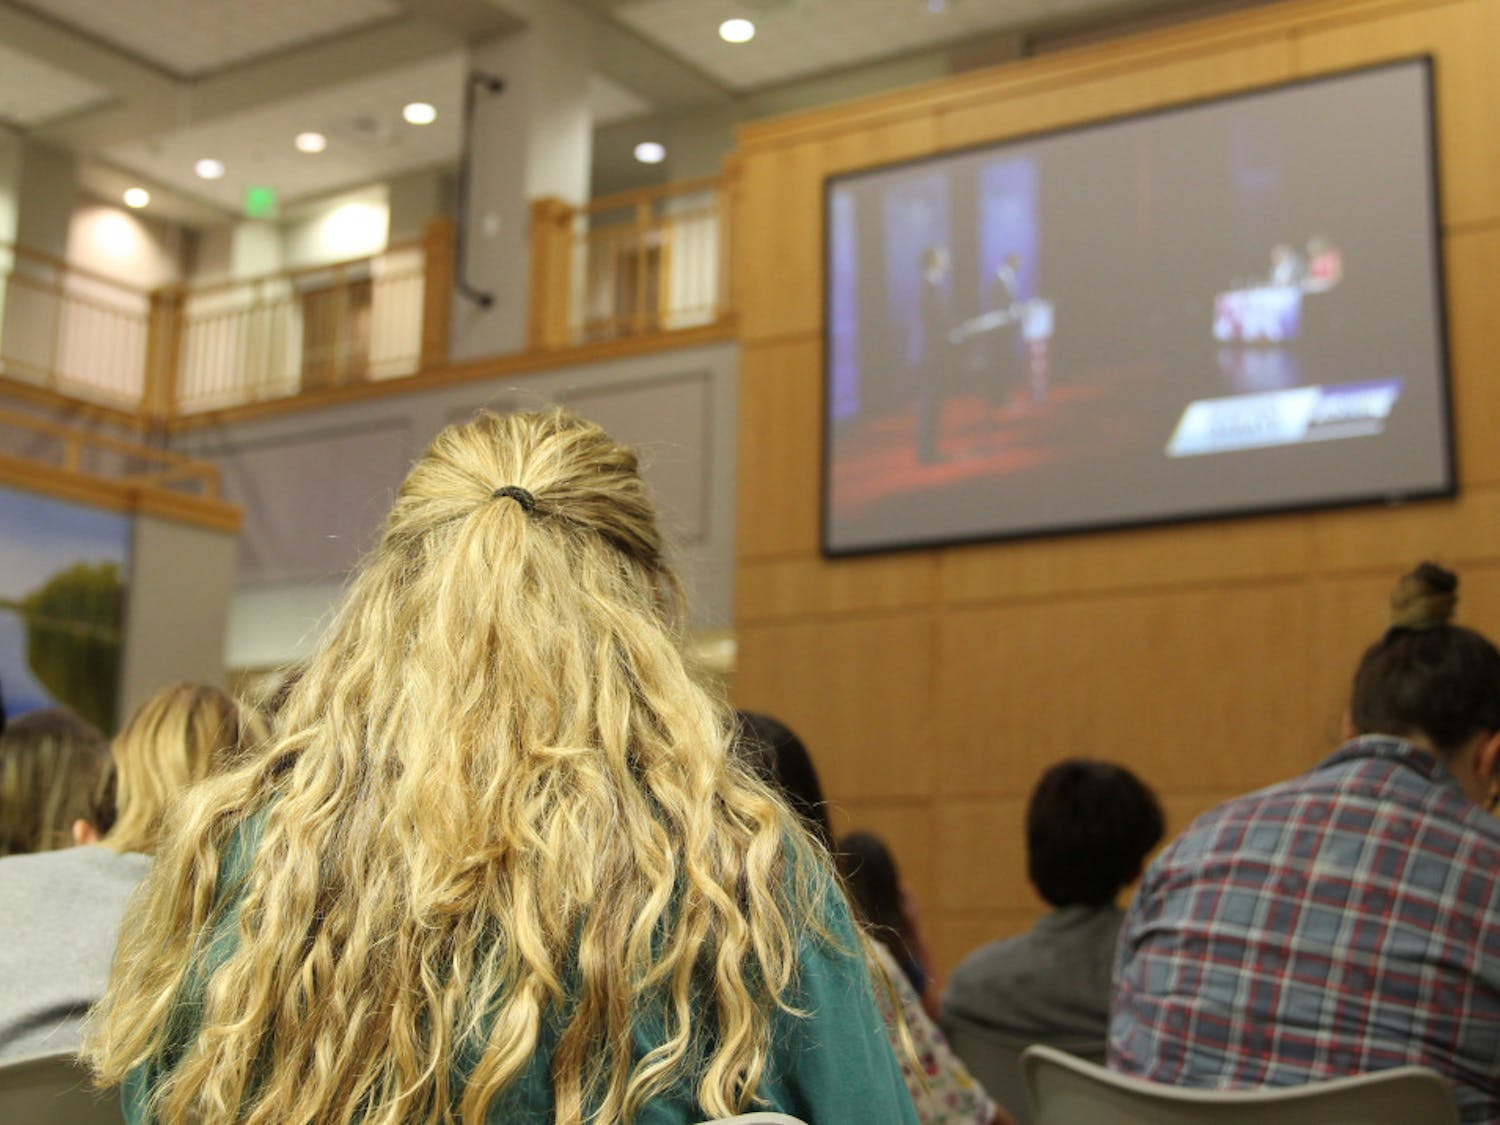 Grace Banahan, an18-year-old political science and journalism major, listens to Florida Governor candidates Ron DeSantis and Andrew Gillum debate on corruption and racism Wednesday night at the Governor's Debate Watch Party in Pugh Hall. Banahan is voting for her first time this year.